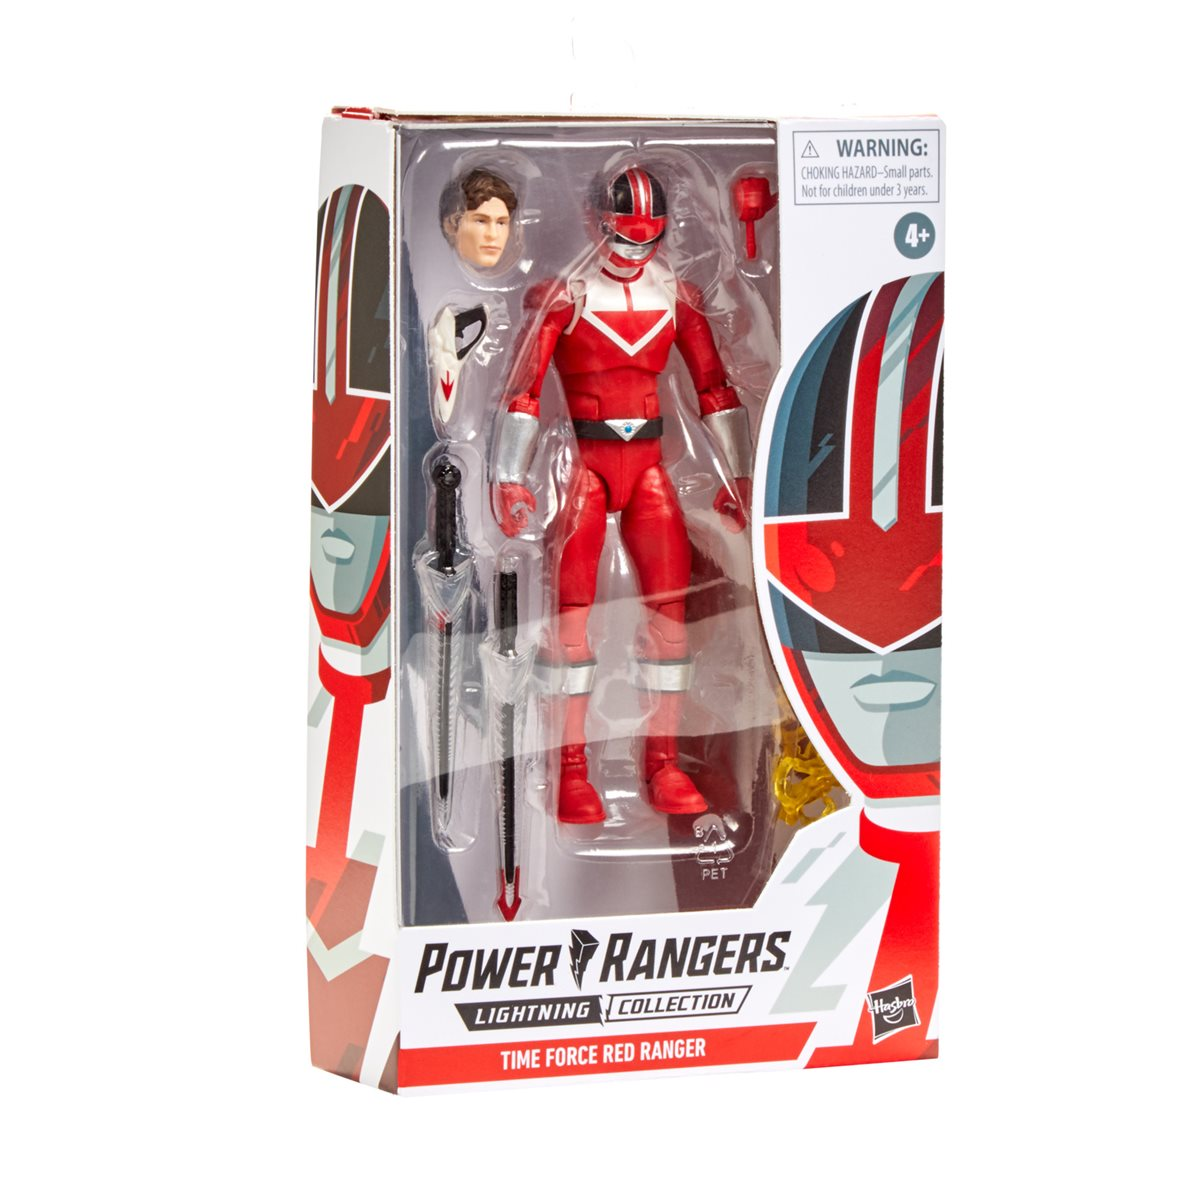 FACTORY SEALED * POWER RANGERS LA FOUDRE COLLECTION Time Force Red Ranger 6 pouces